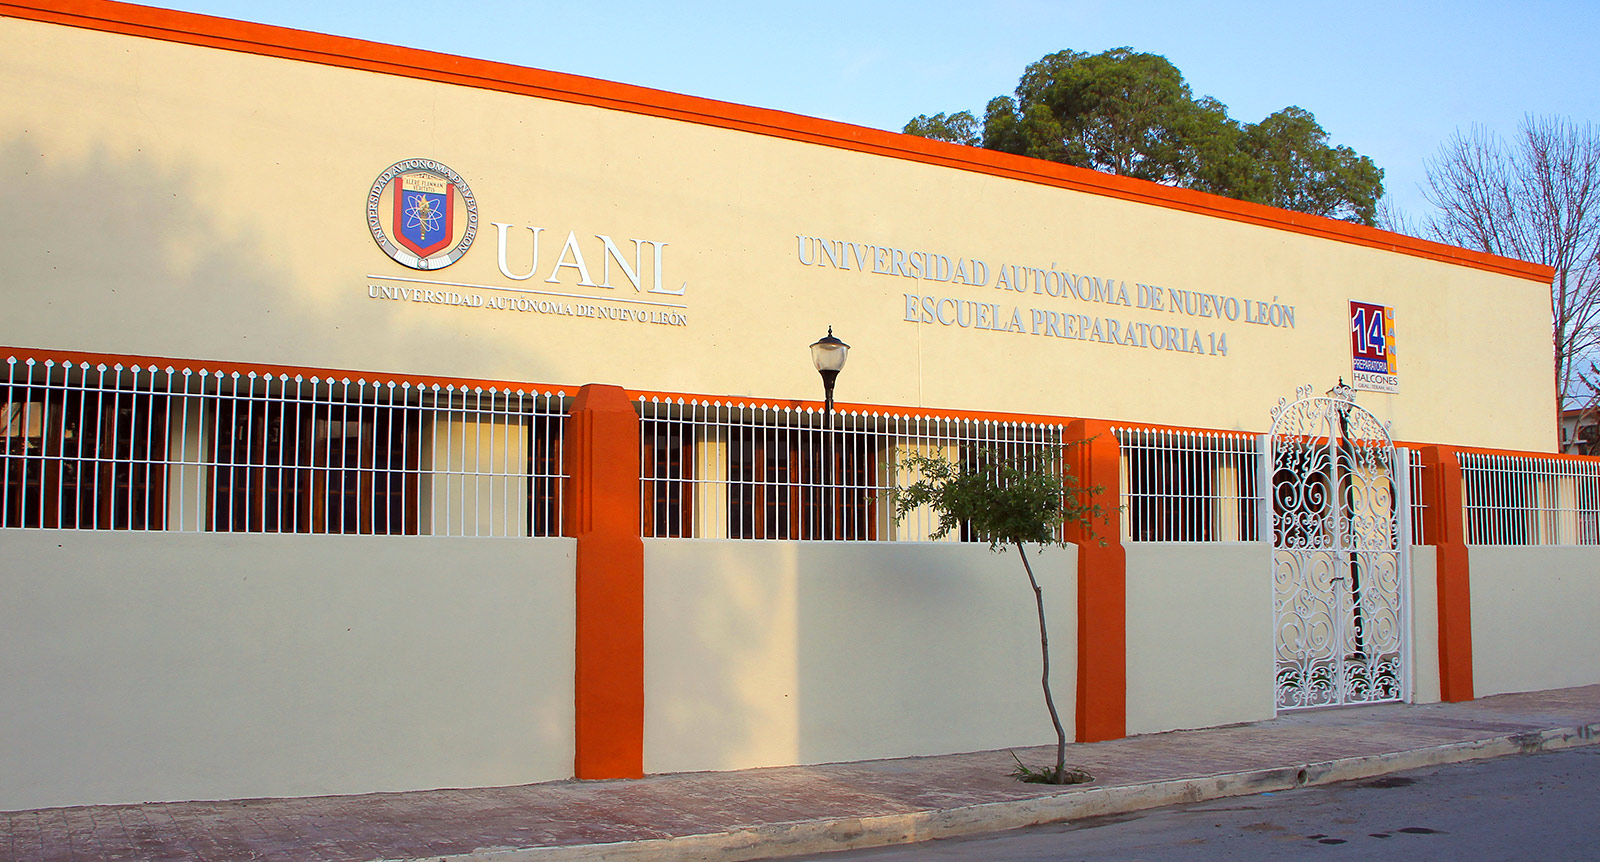 Escuela Preparatoria No. 14 General Terán